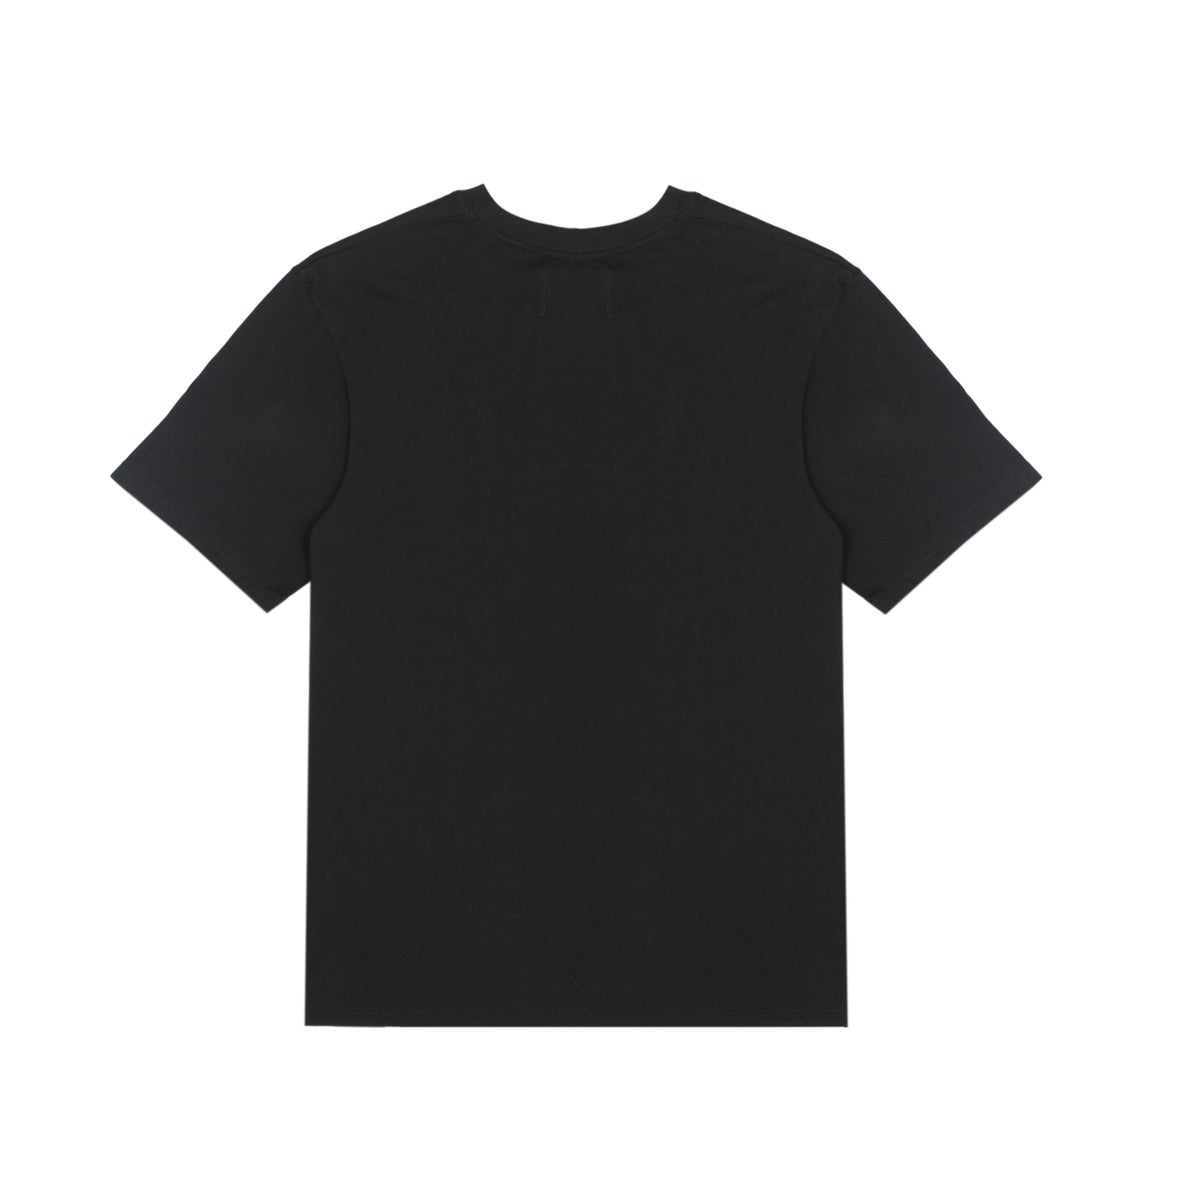 Image of Psychic 9-5 Club T-Shirt - Black with Blood Print